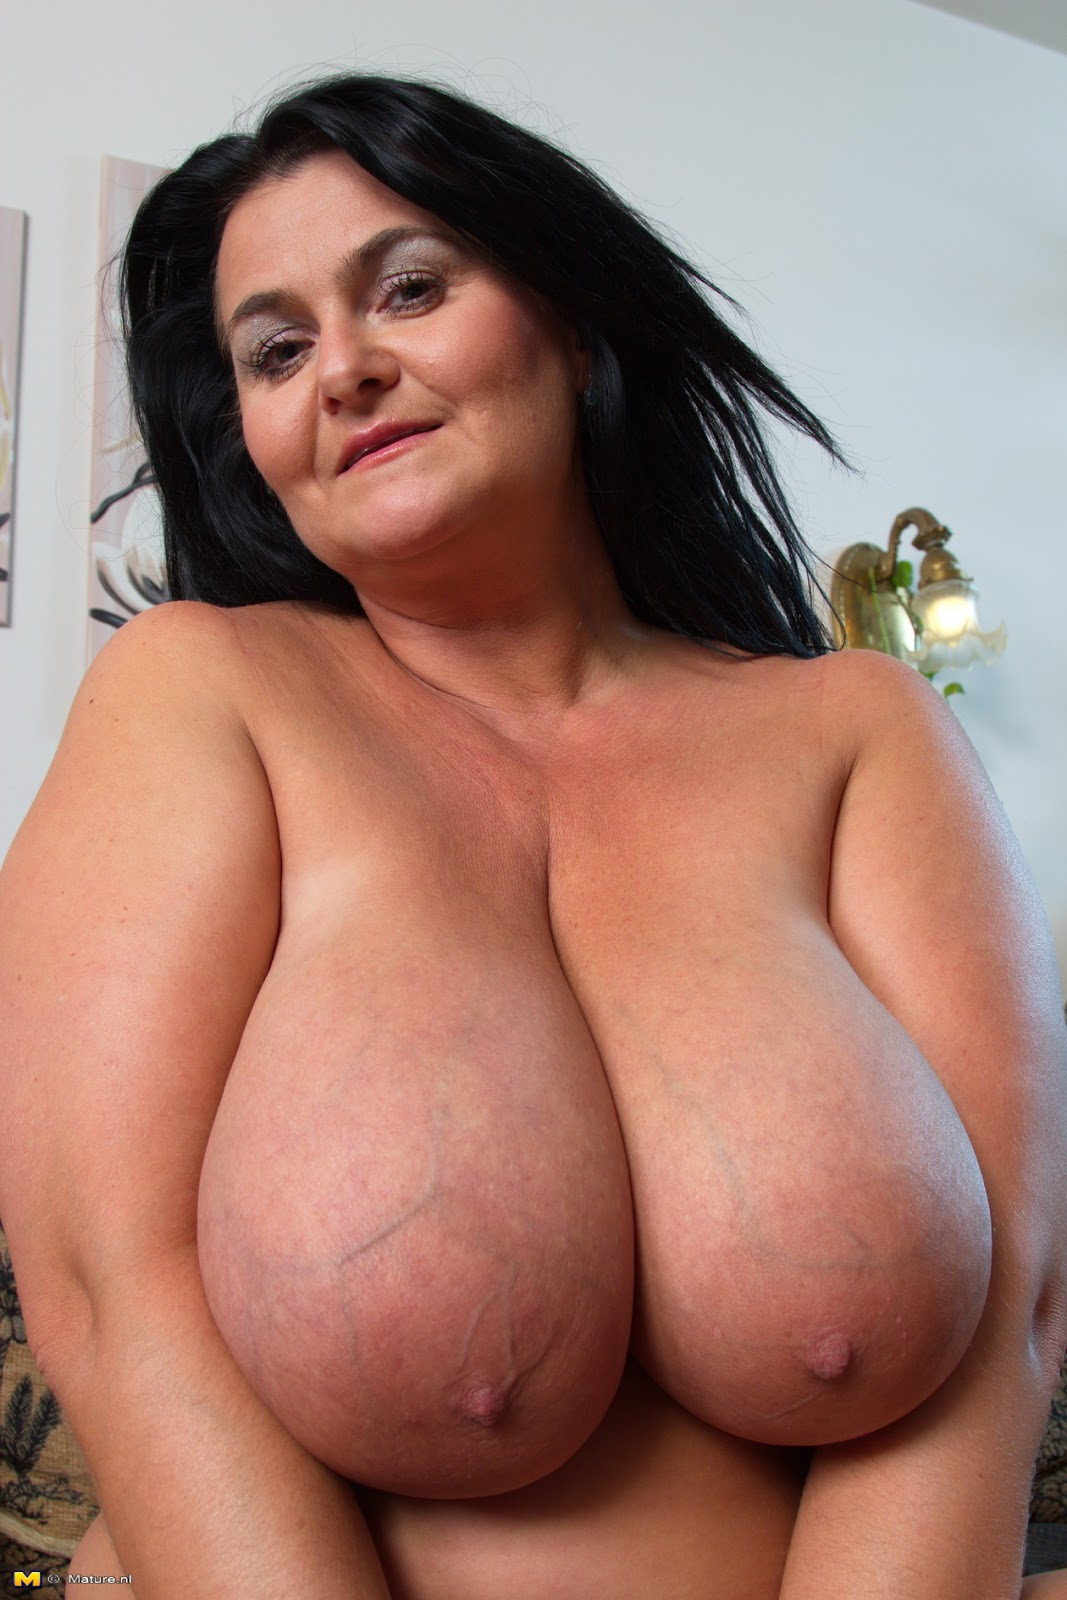 Older Women Big Natural Tits